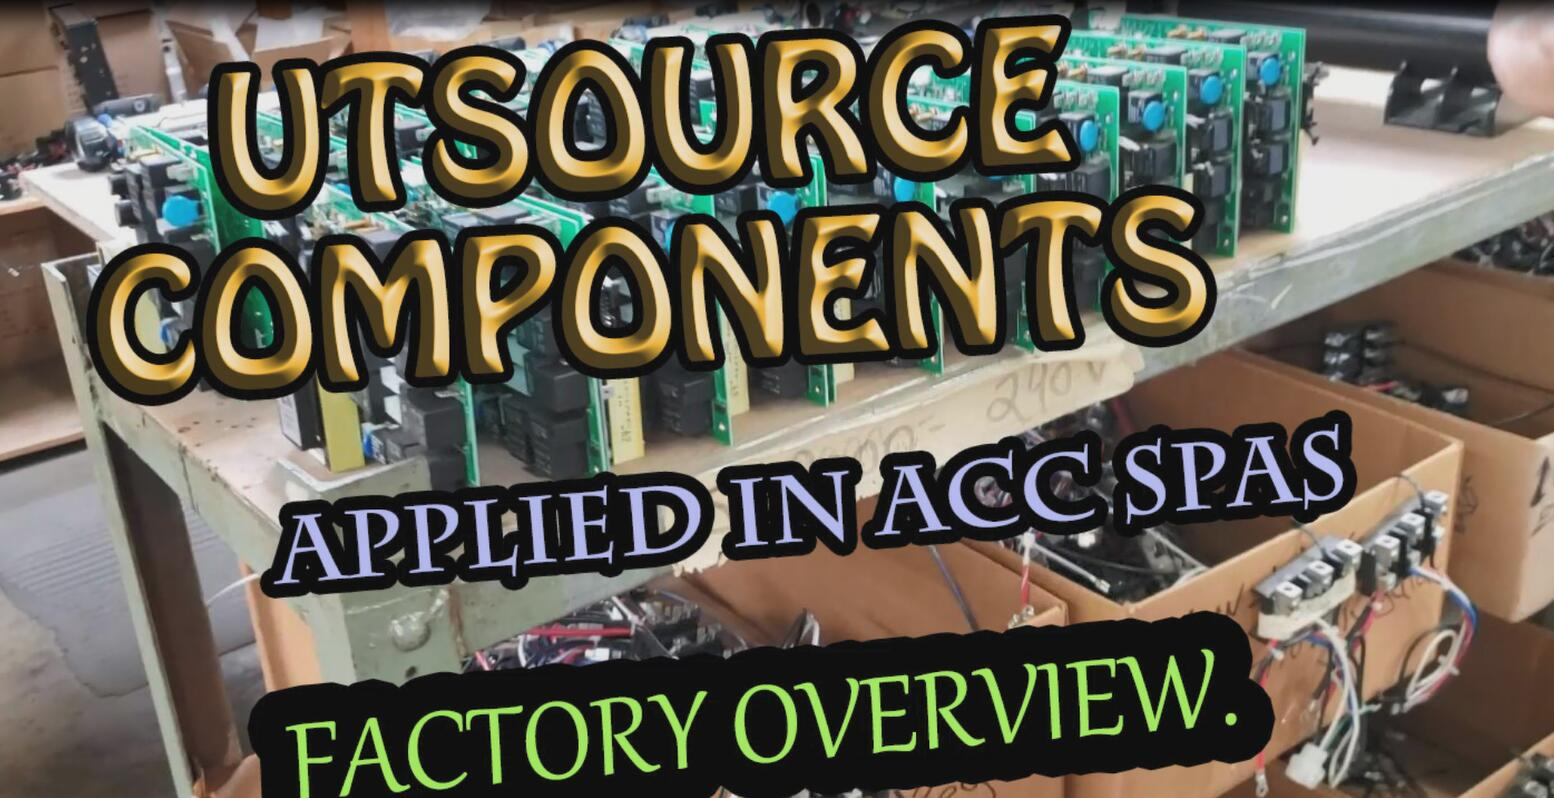 Utsource components applied in ACC Spas, factory overview.